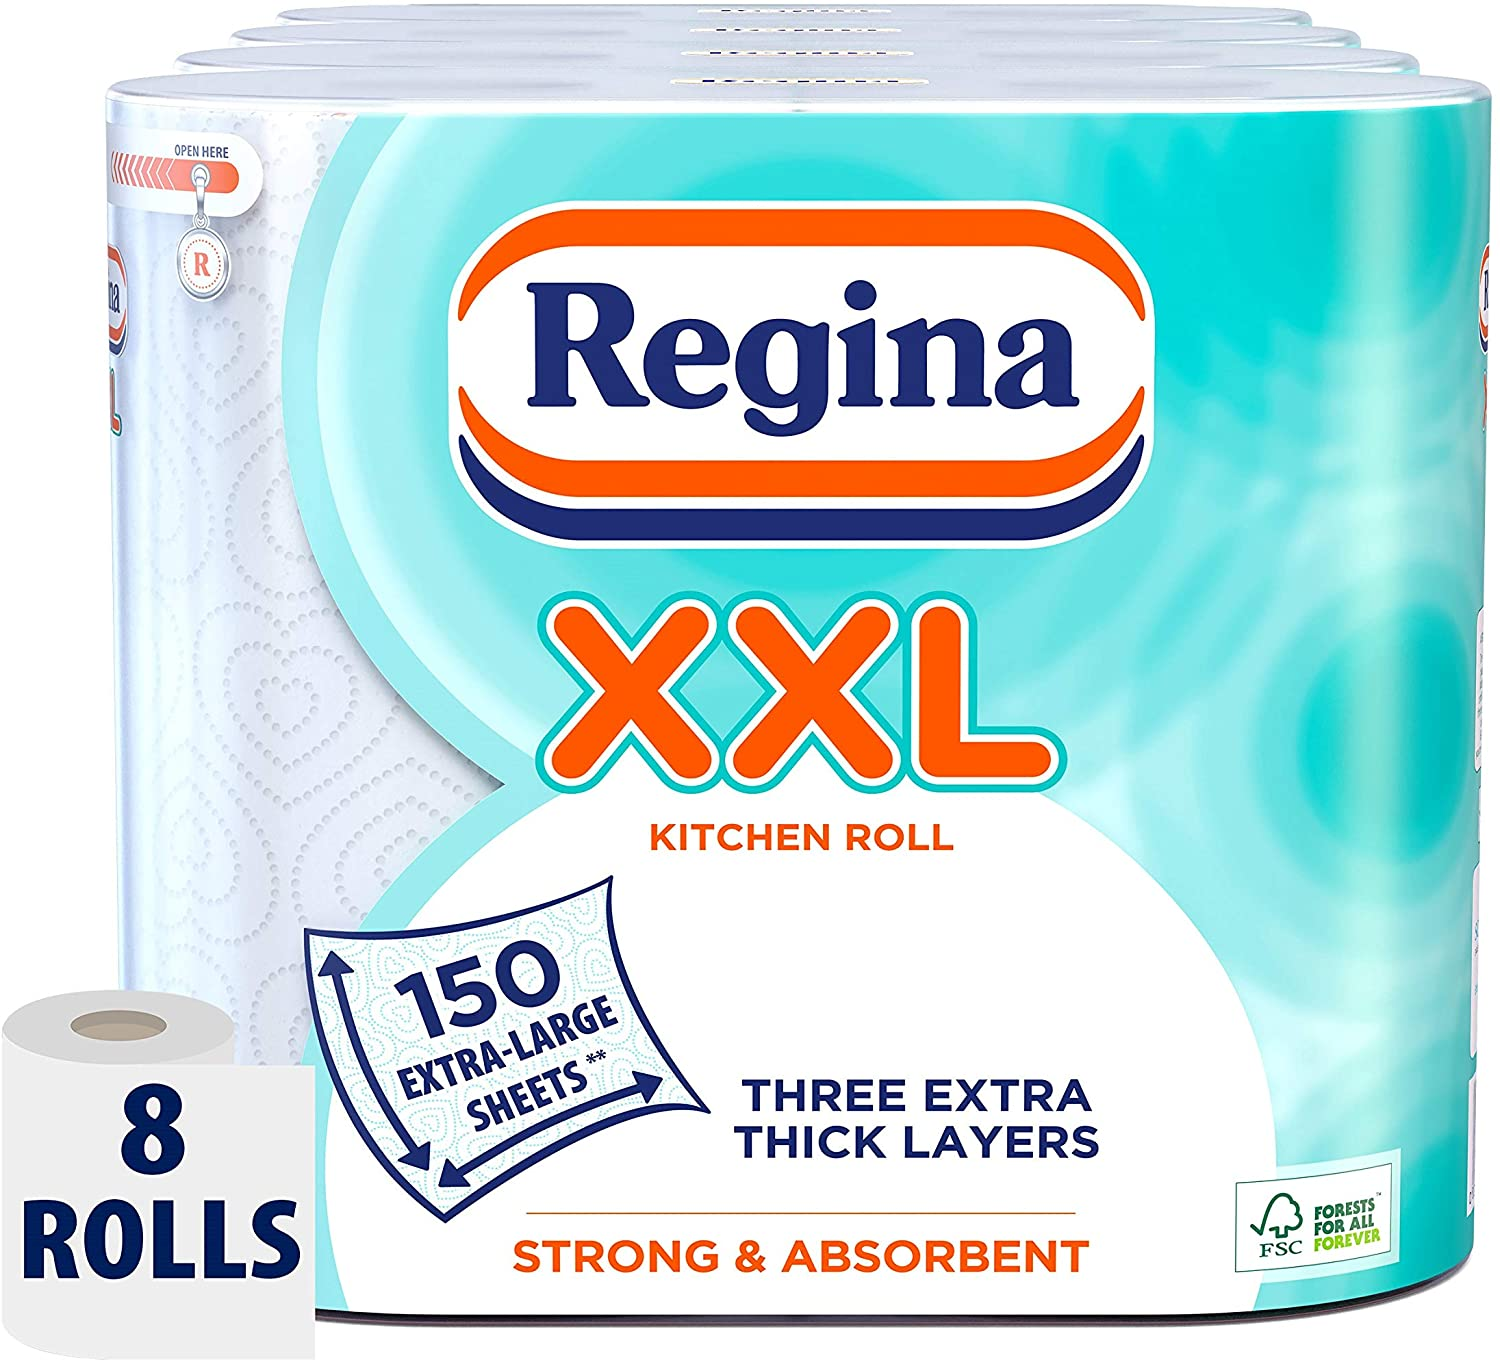 Regina XXL Kitchen Roll, 8 Rolls, 600 Extra Large Sheets